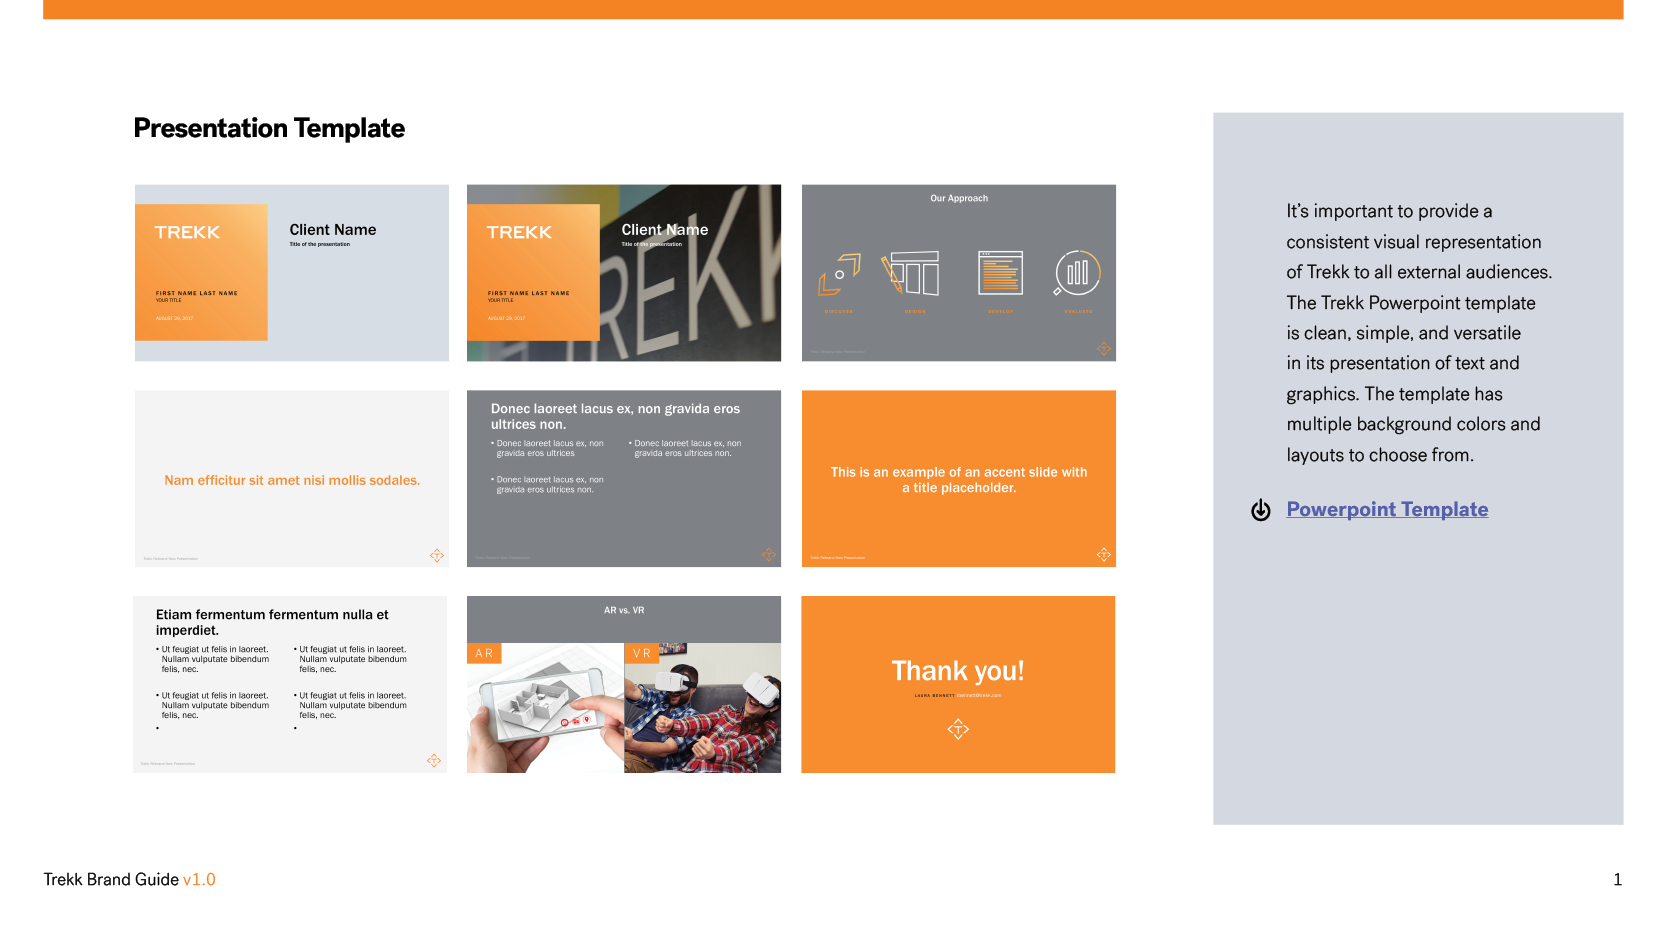 Trekk Brand Guide Presentation Template